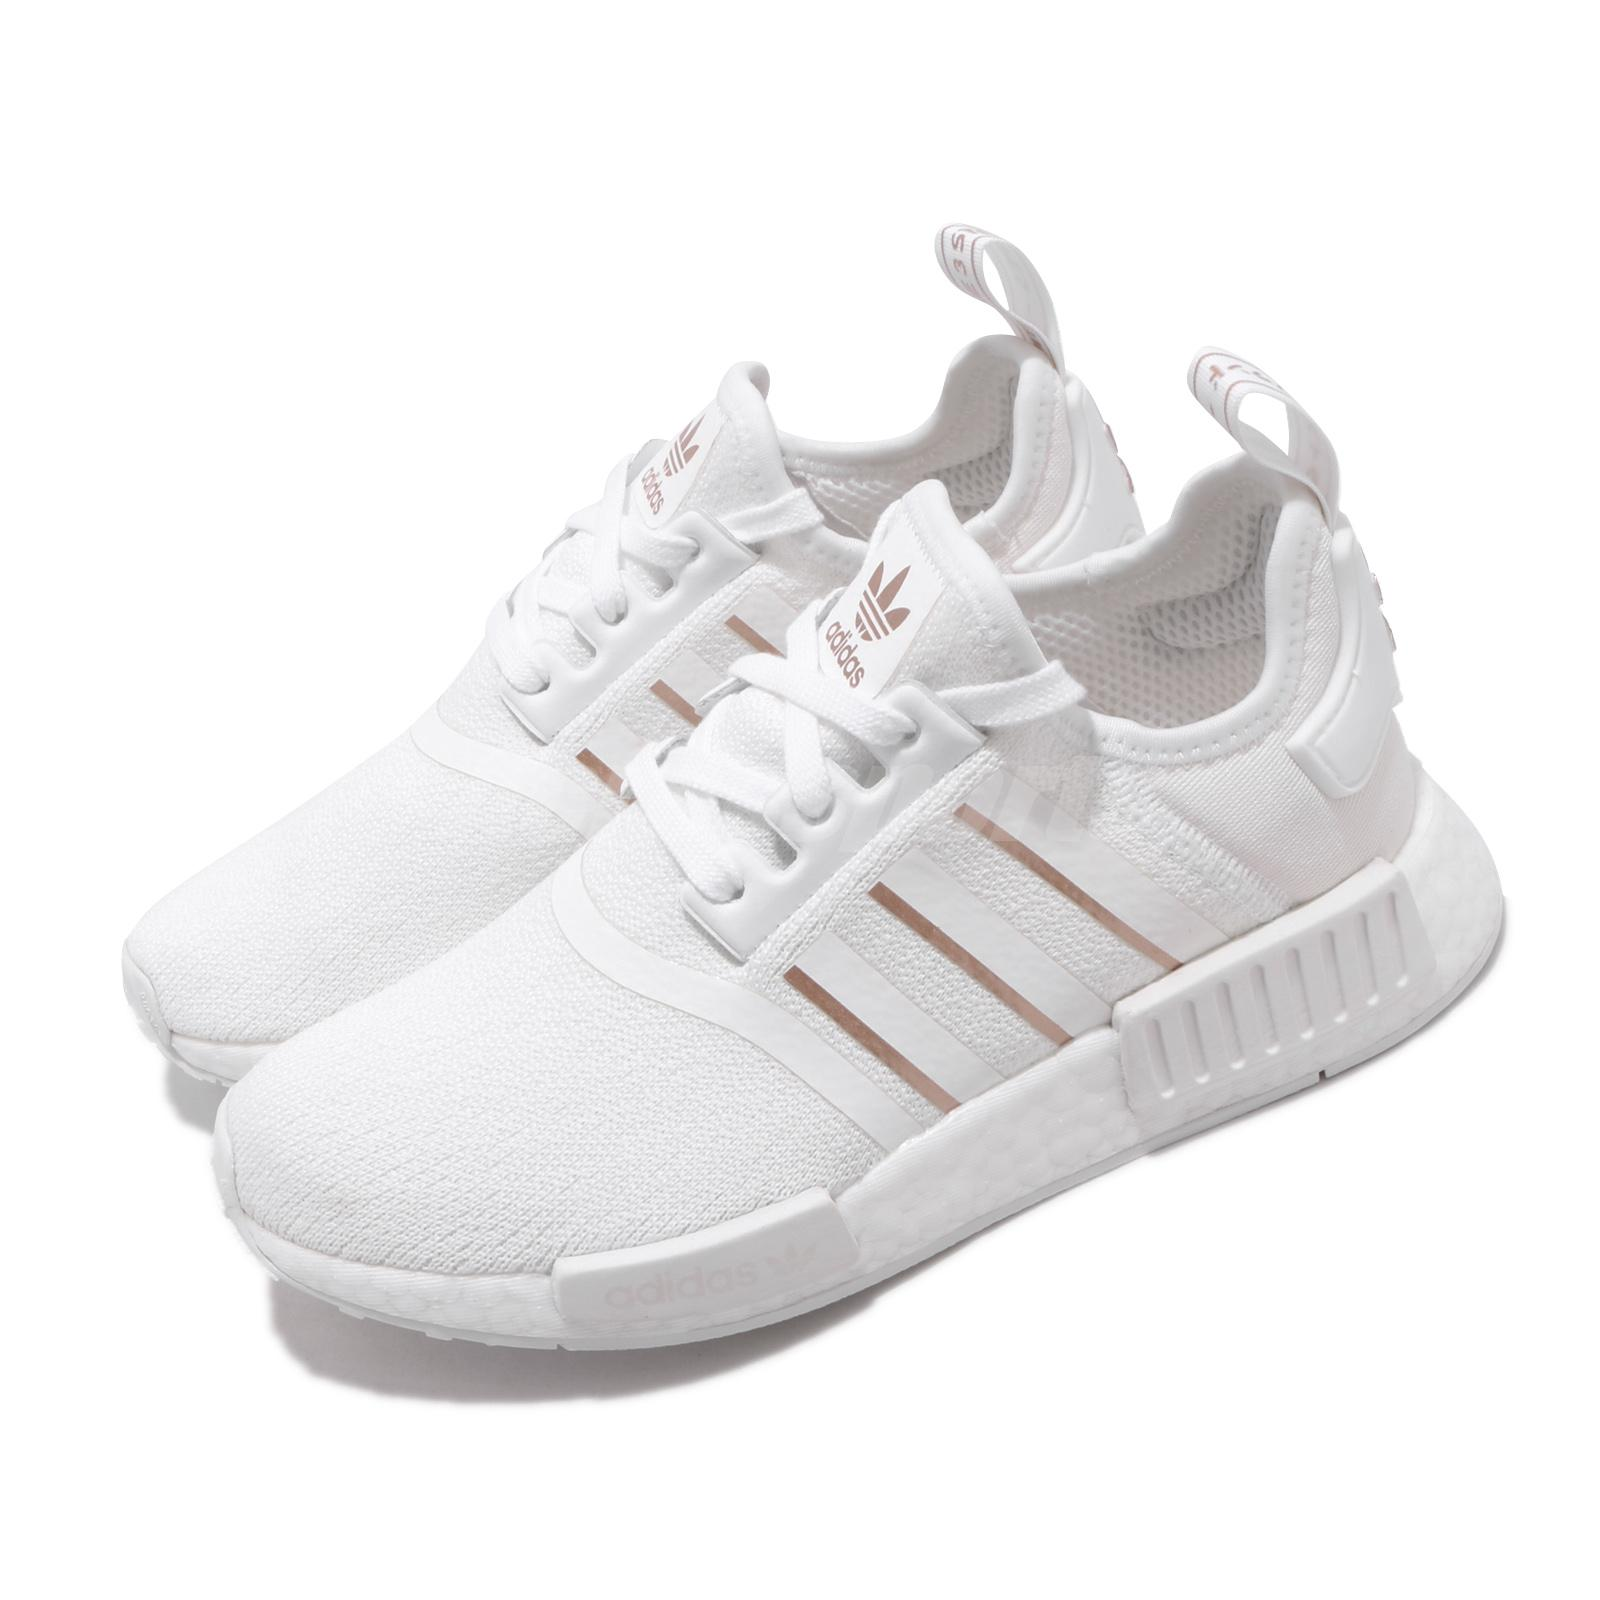 Adidas Originals Nmd R1 W Boost White Rose Gold Women Casual Shoe